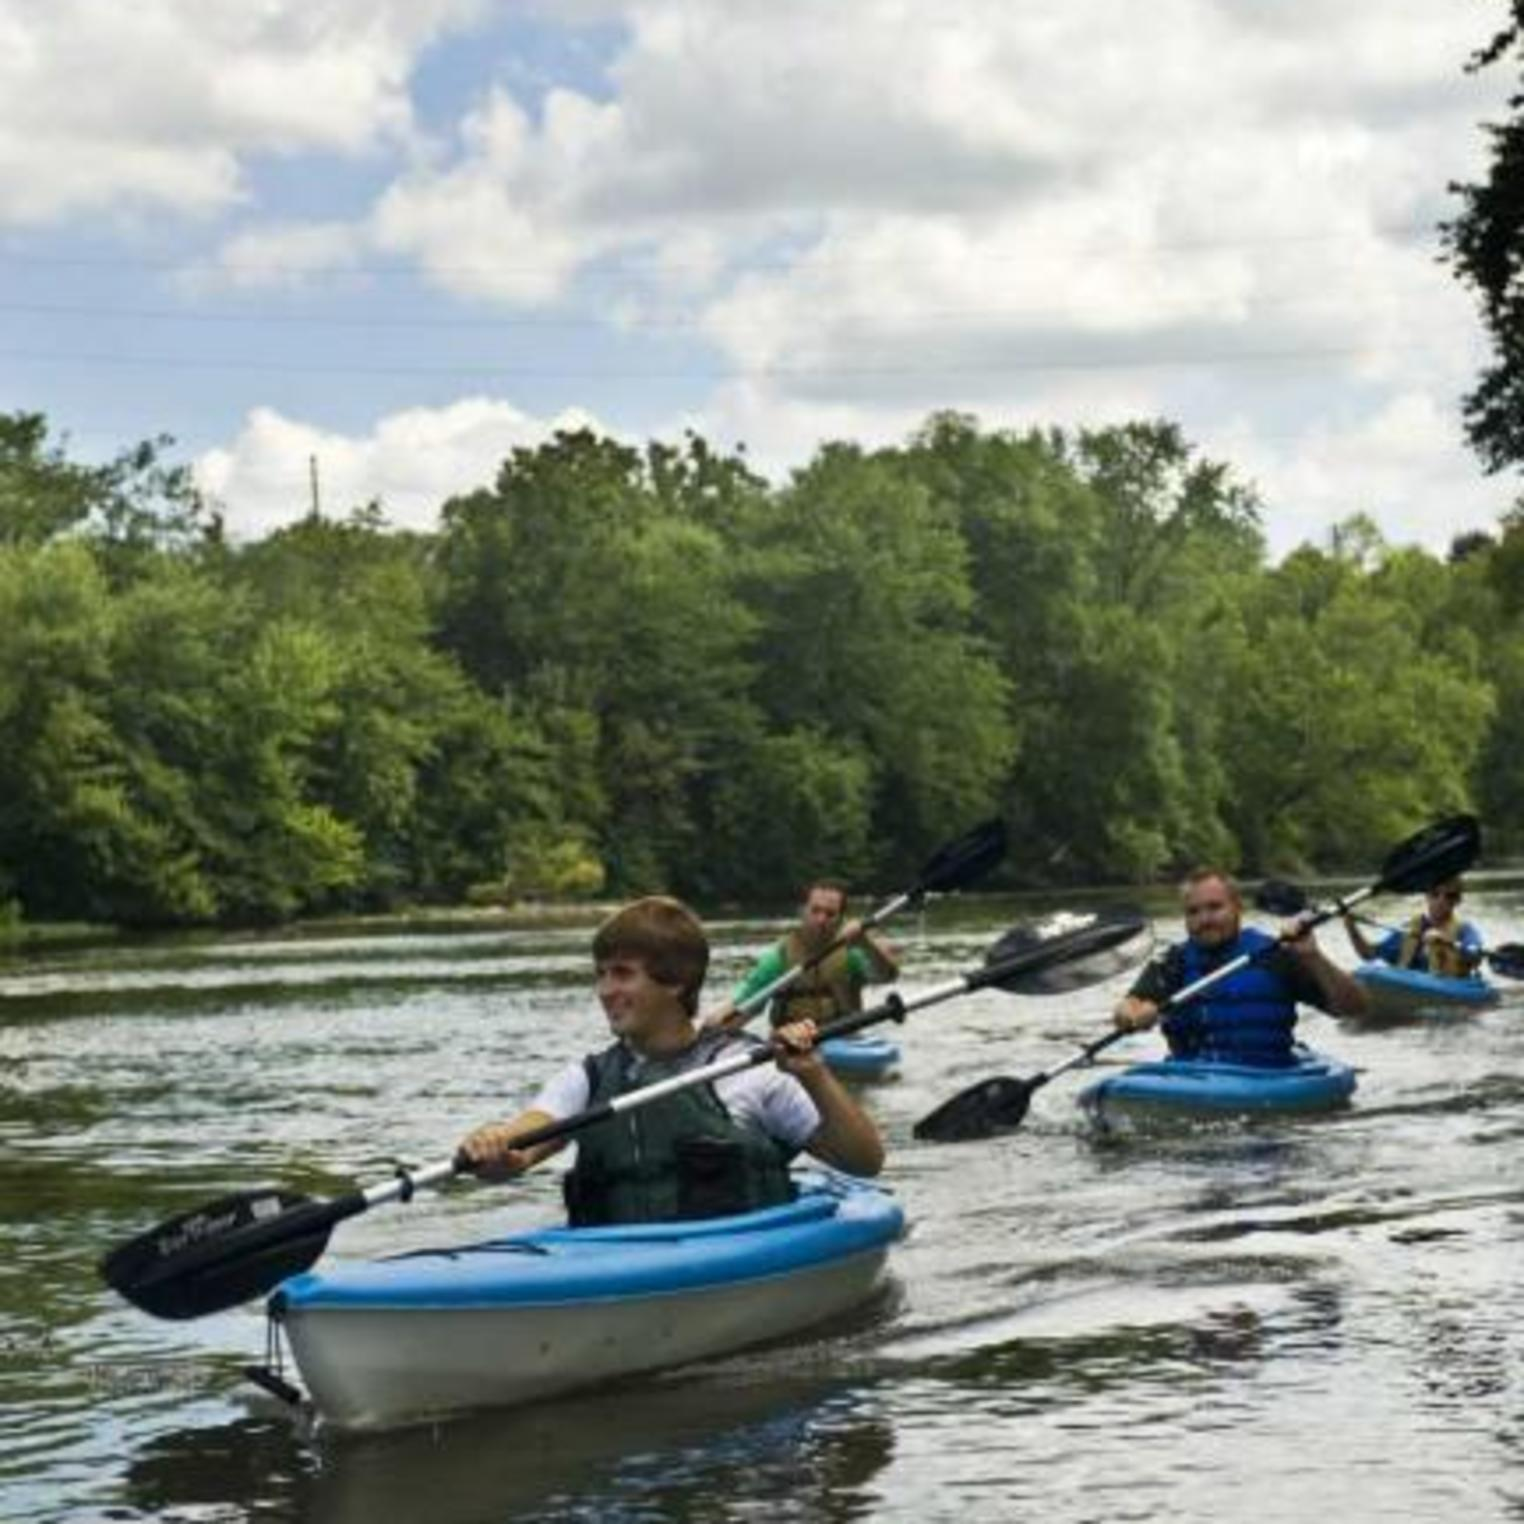 Group kayaking on the Conodoguinet Creek